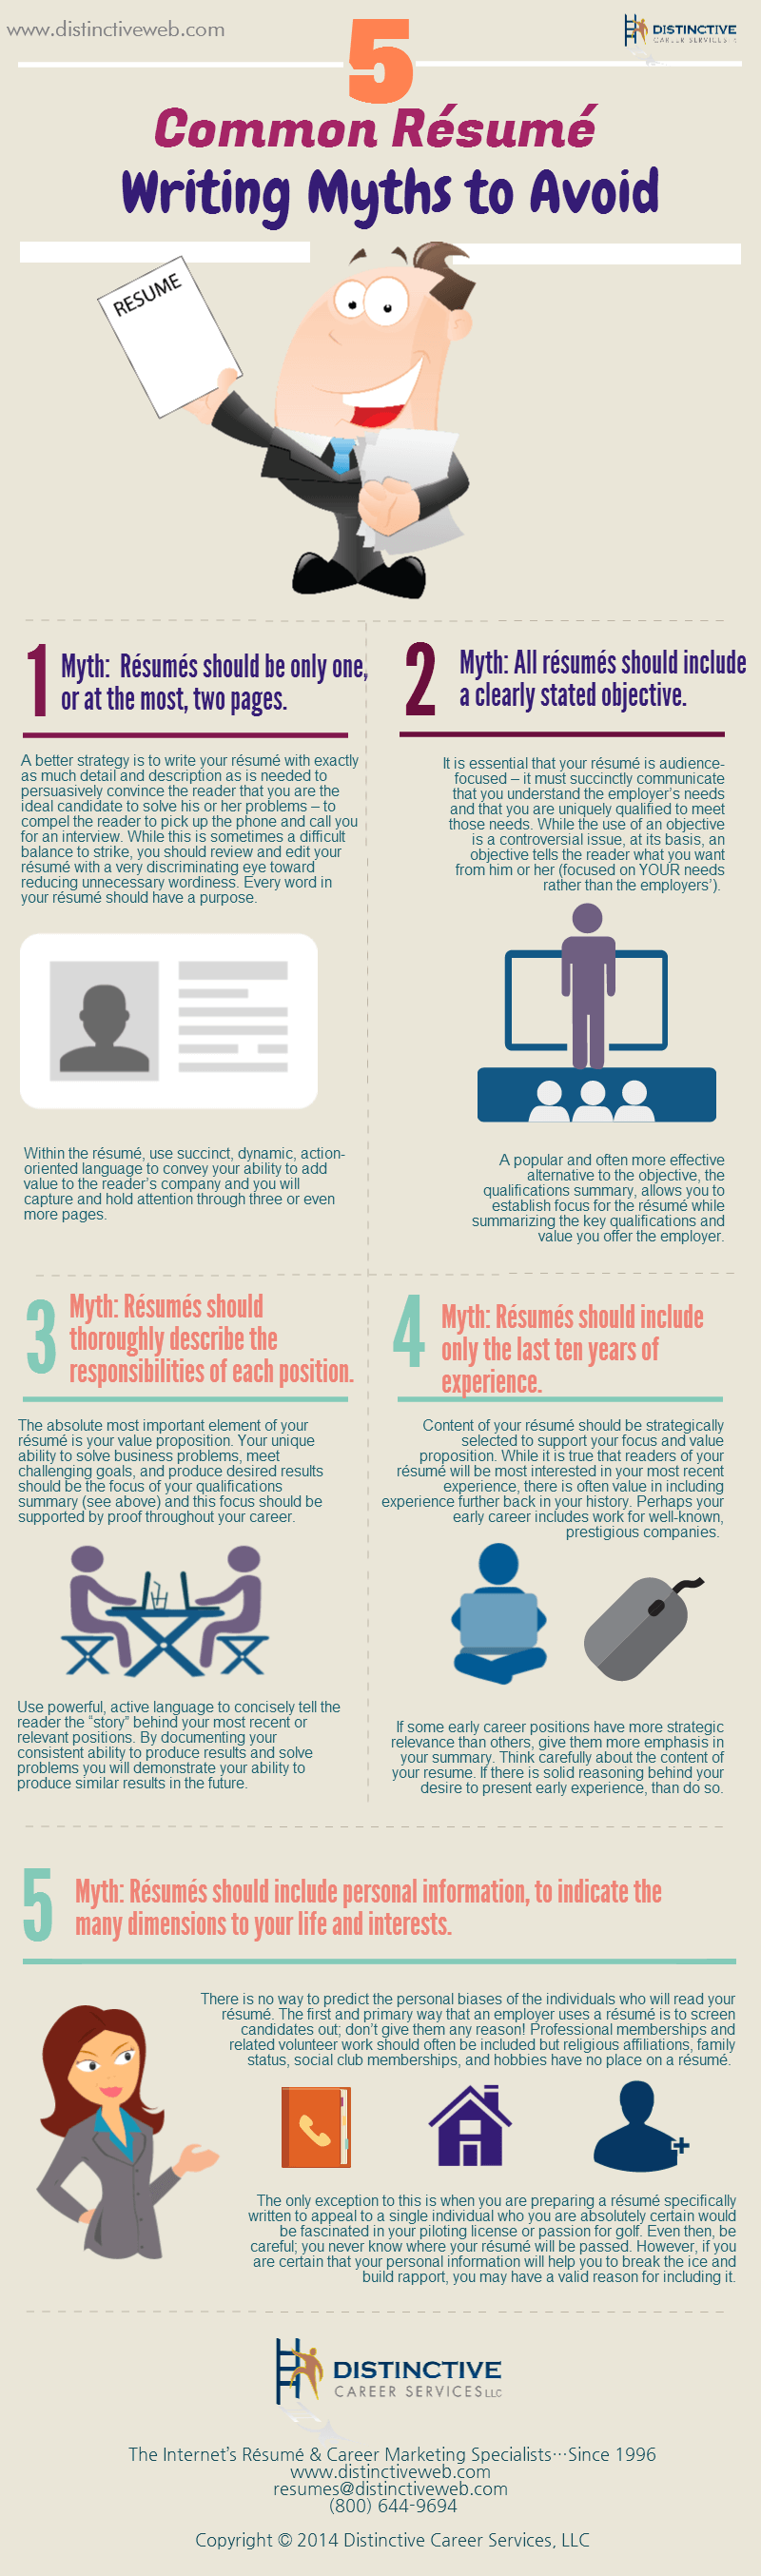 An Infographic That Explains Five Of The Most Common Resume Writing Myths  That You Should Avoid When Writing A Resume.